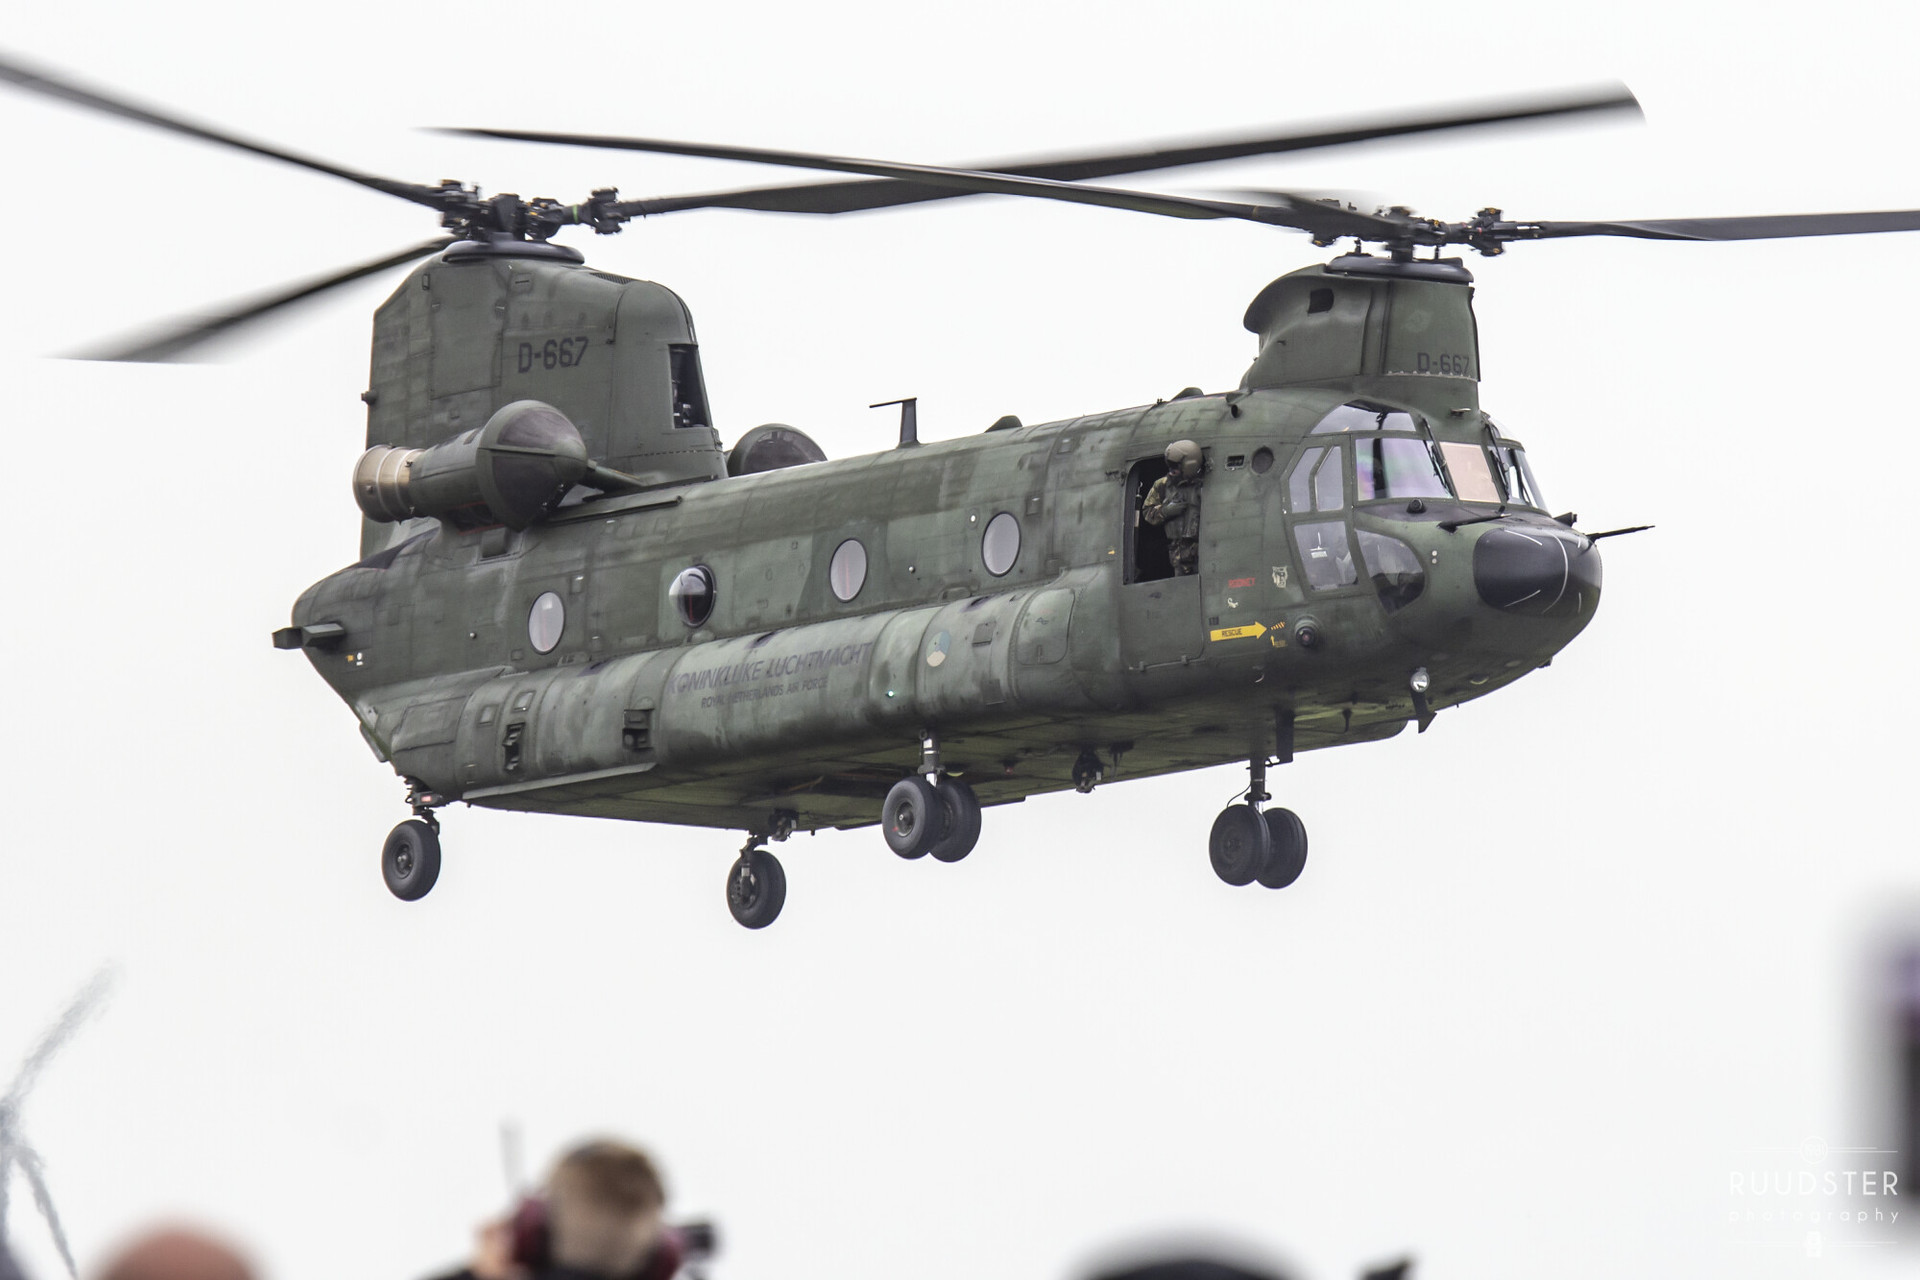 D-667   Build: 1996 - Boeing CH-47D Chinook